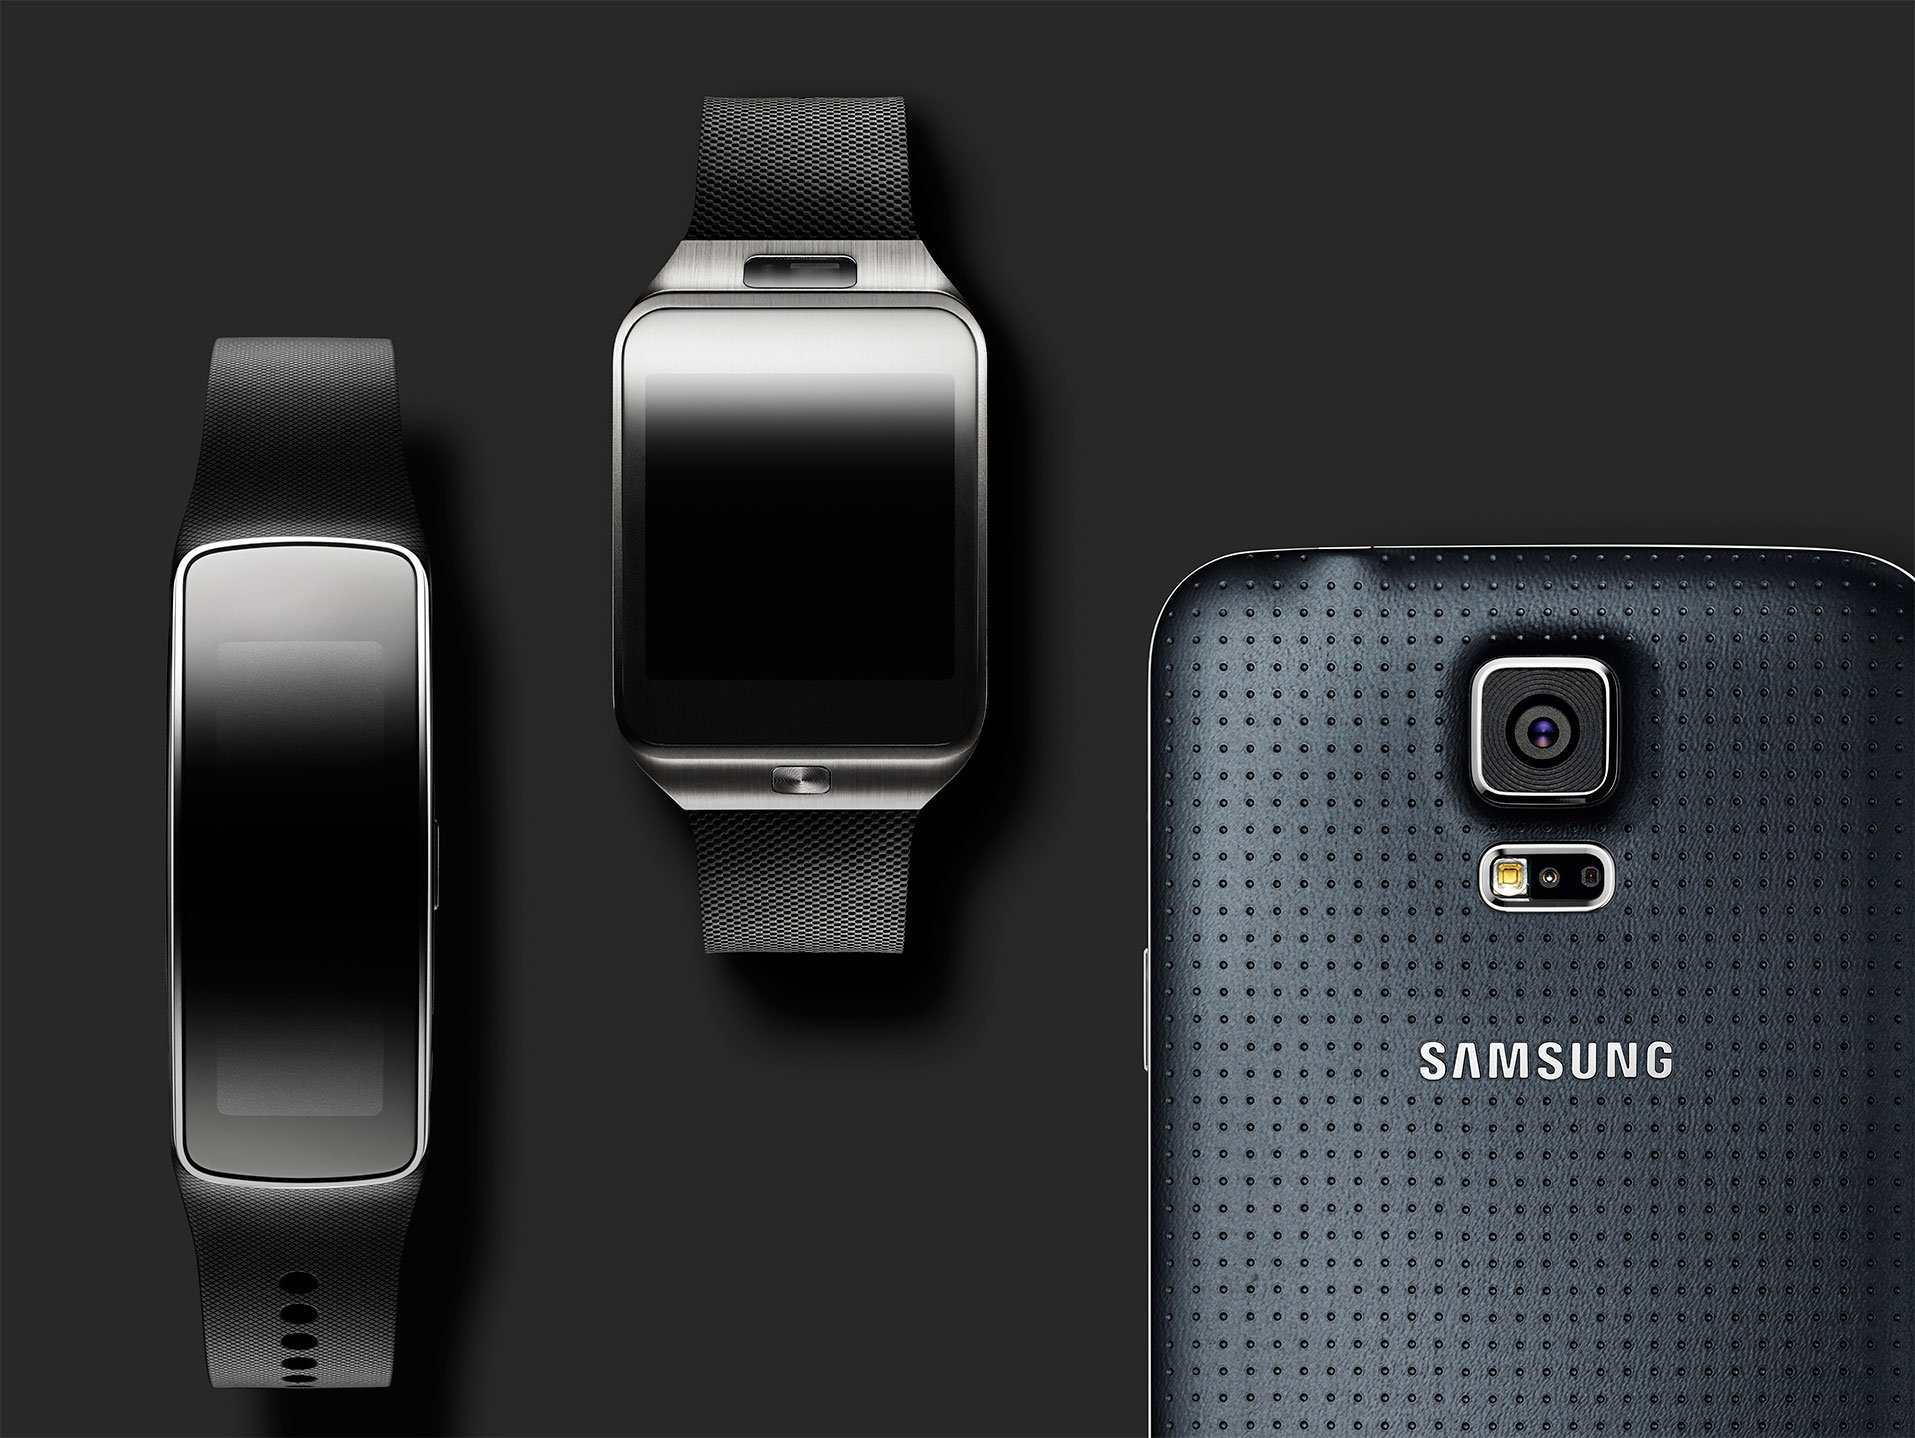 Inside The Samsung Gear 2, Gear Fit, And S5